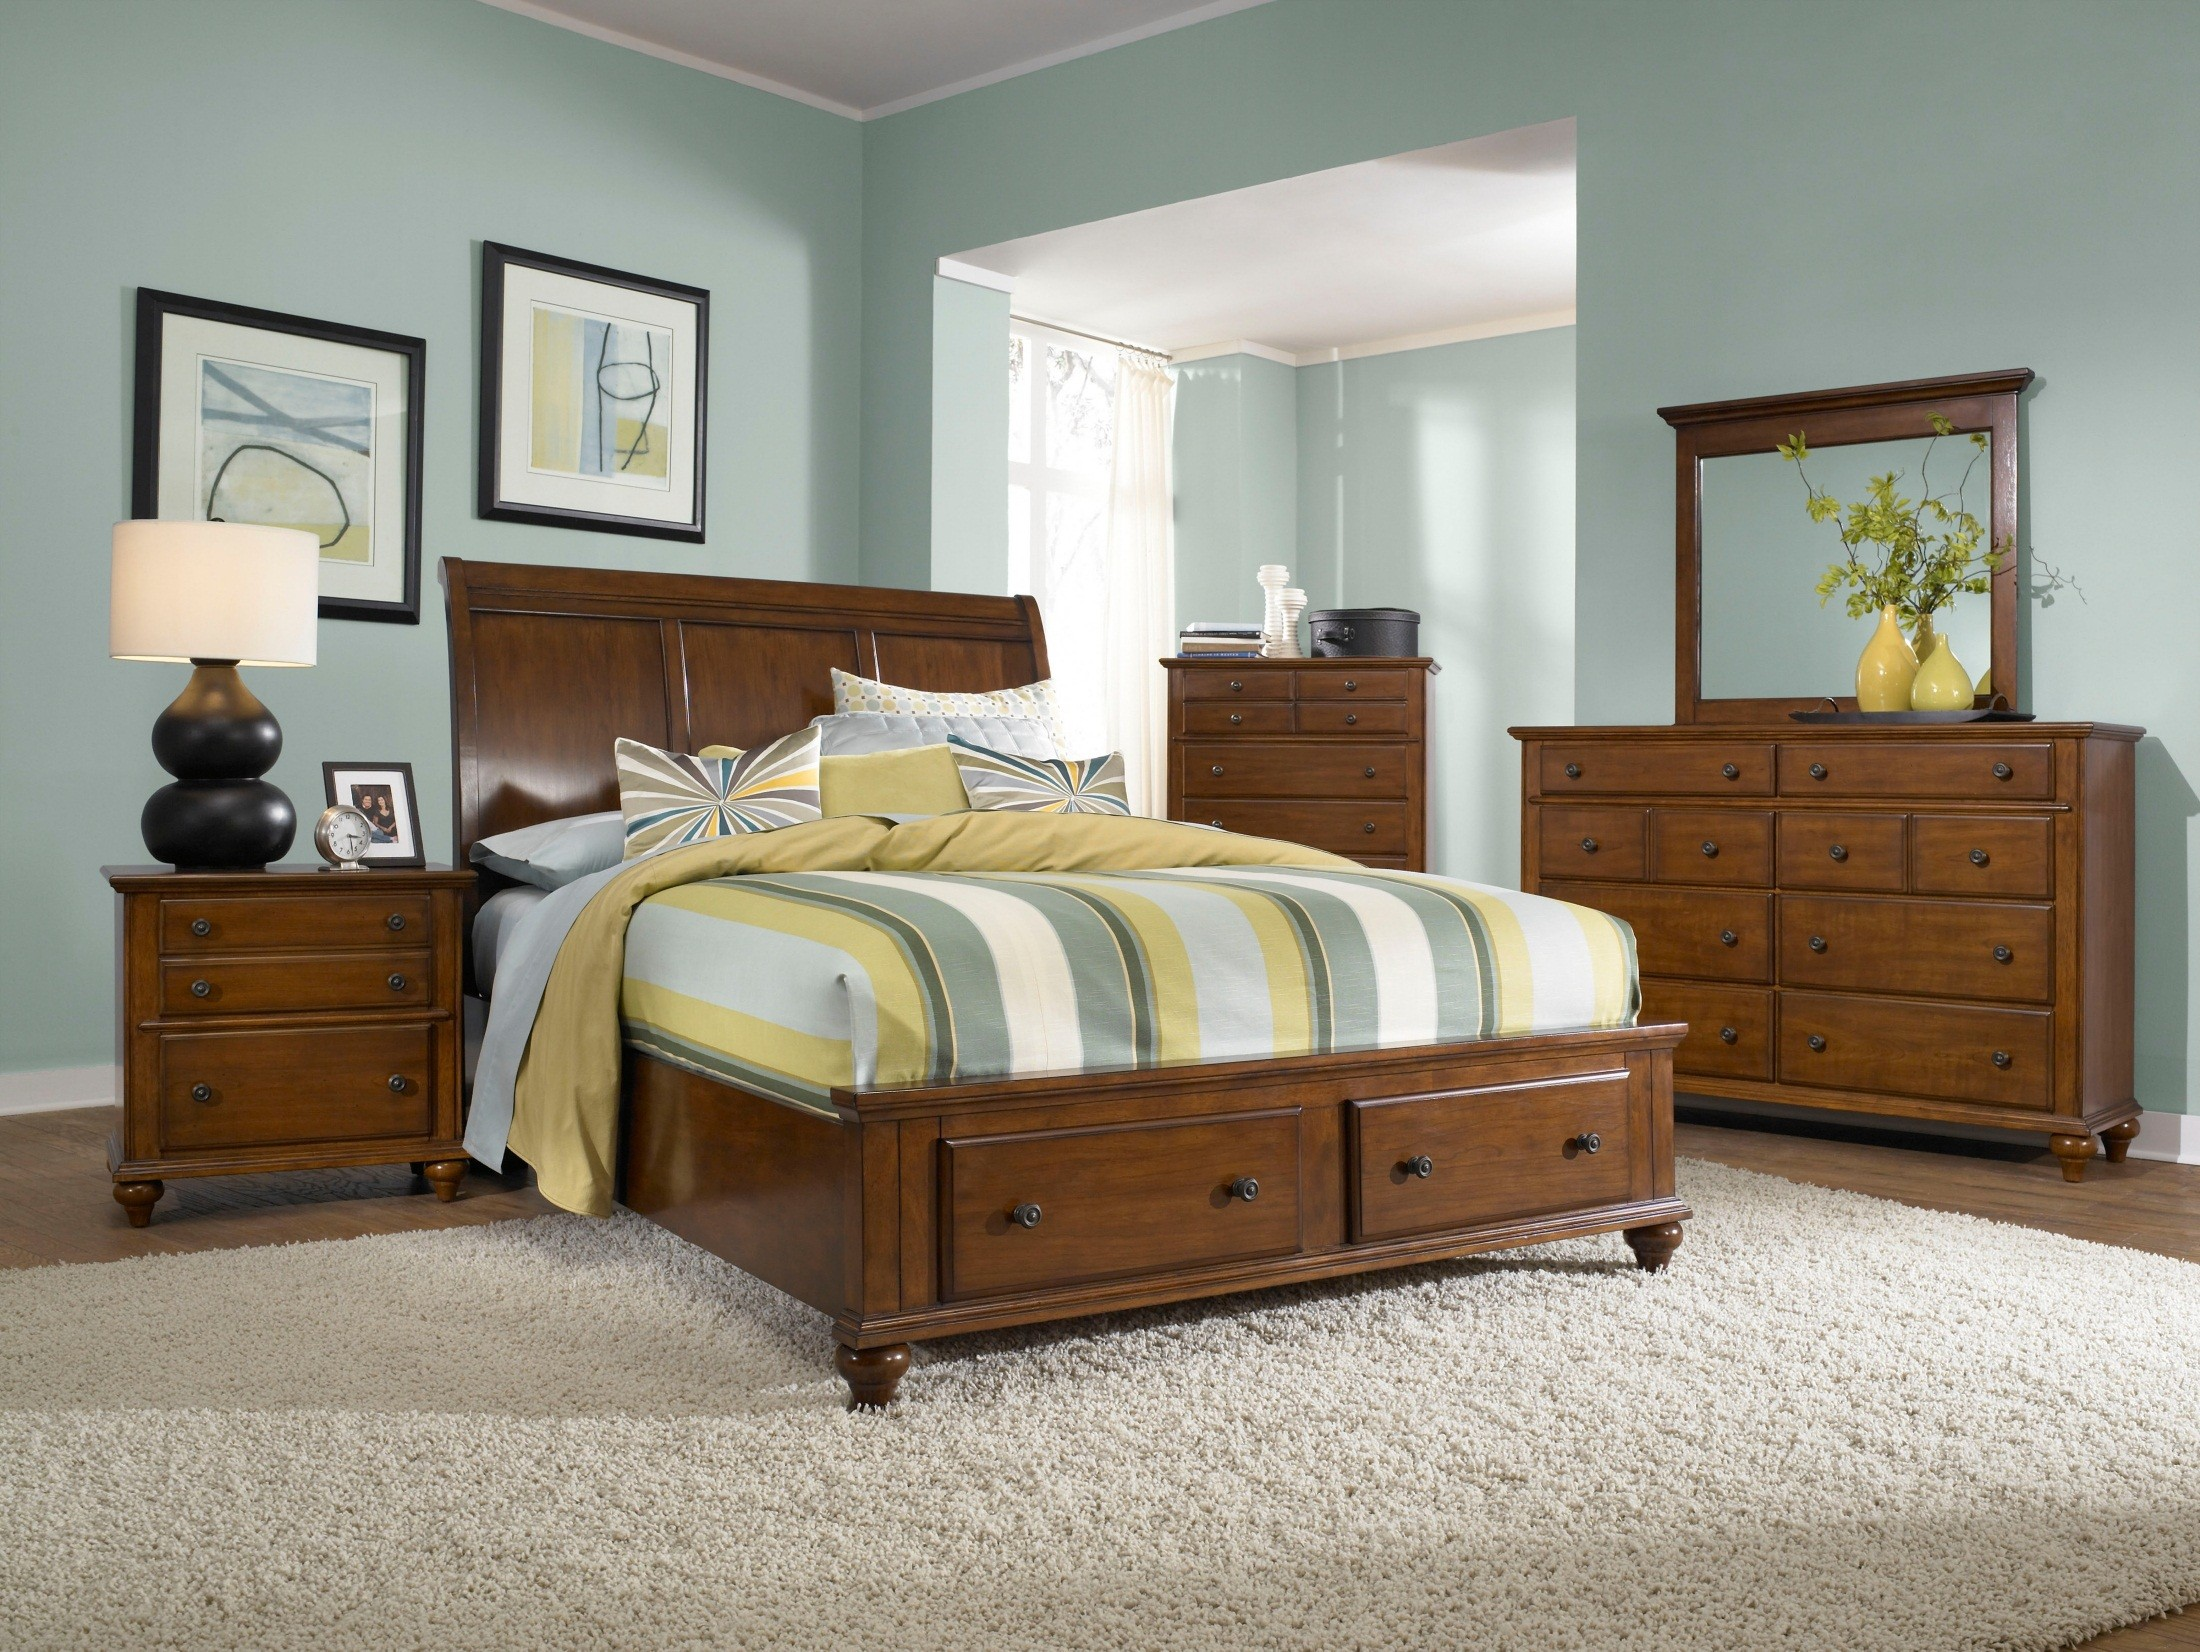 Hayden place light cherry king sleigh storage bed from - Broyhill hayden place bedroom set ...